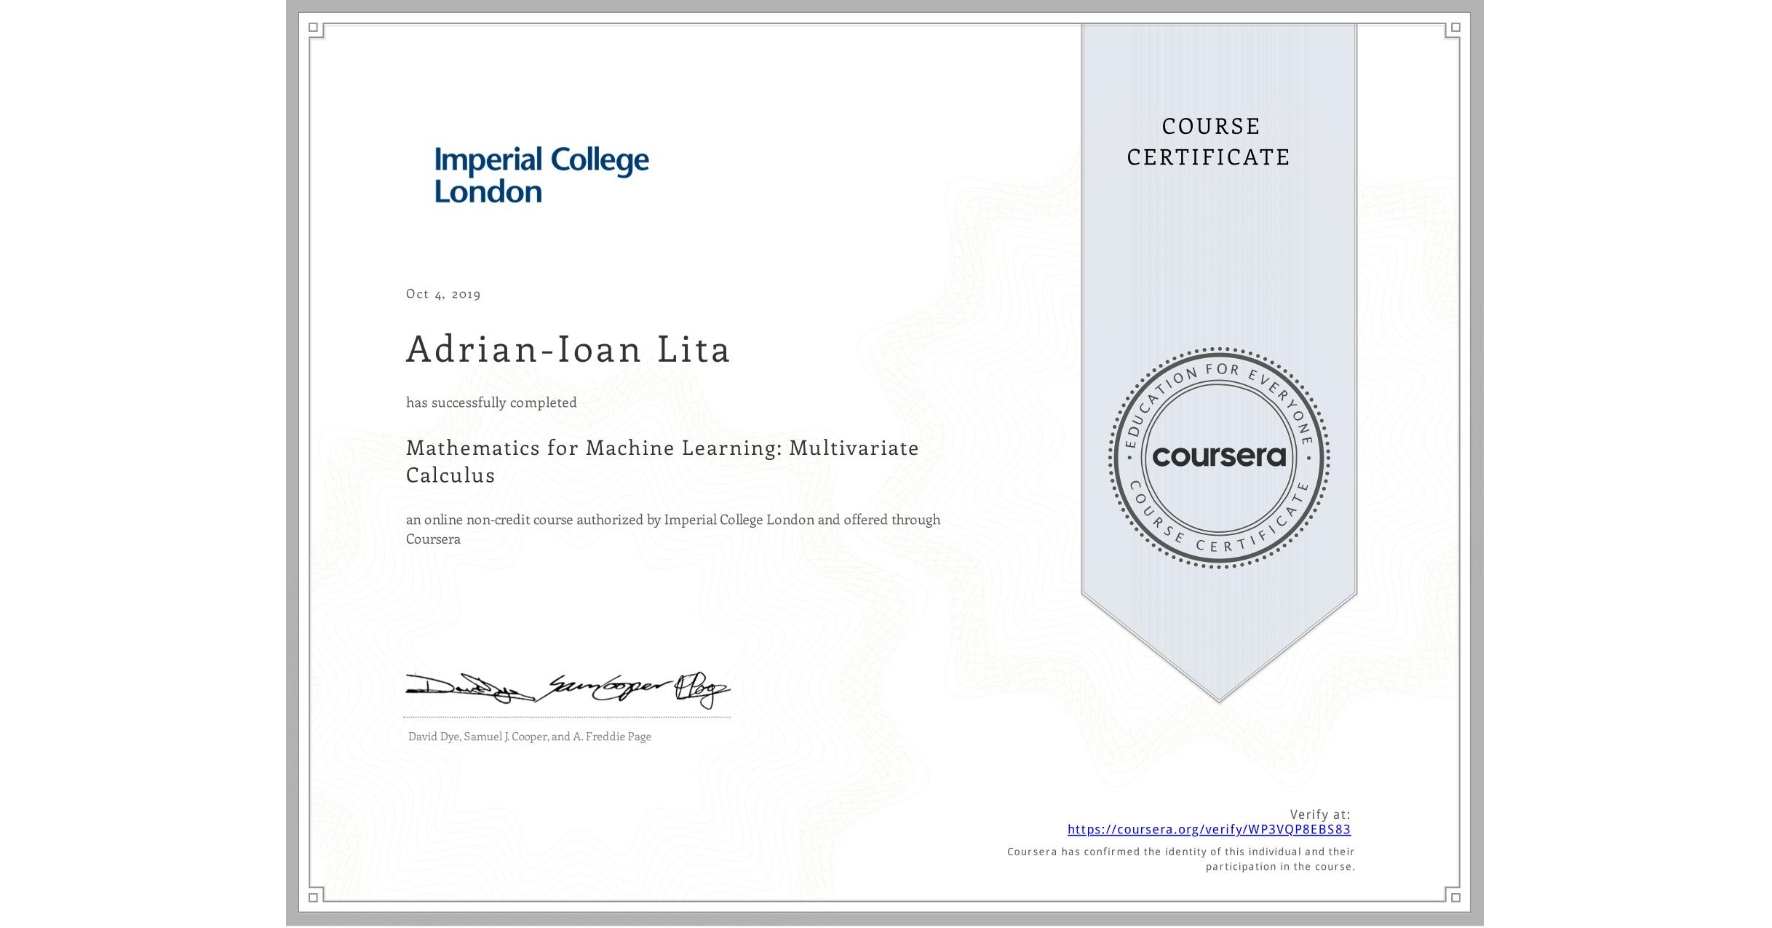 View certificate for Adrian-Ioan Lita, Mathematics for Machine Learning: Multivariate Calculus, an online non-credit course authorized by Imperial College London and offered through Coursera